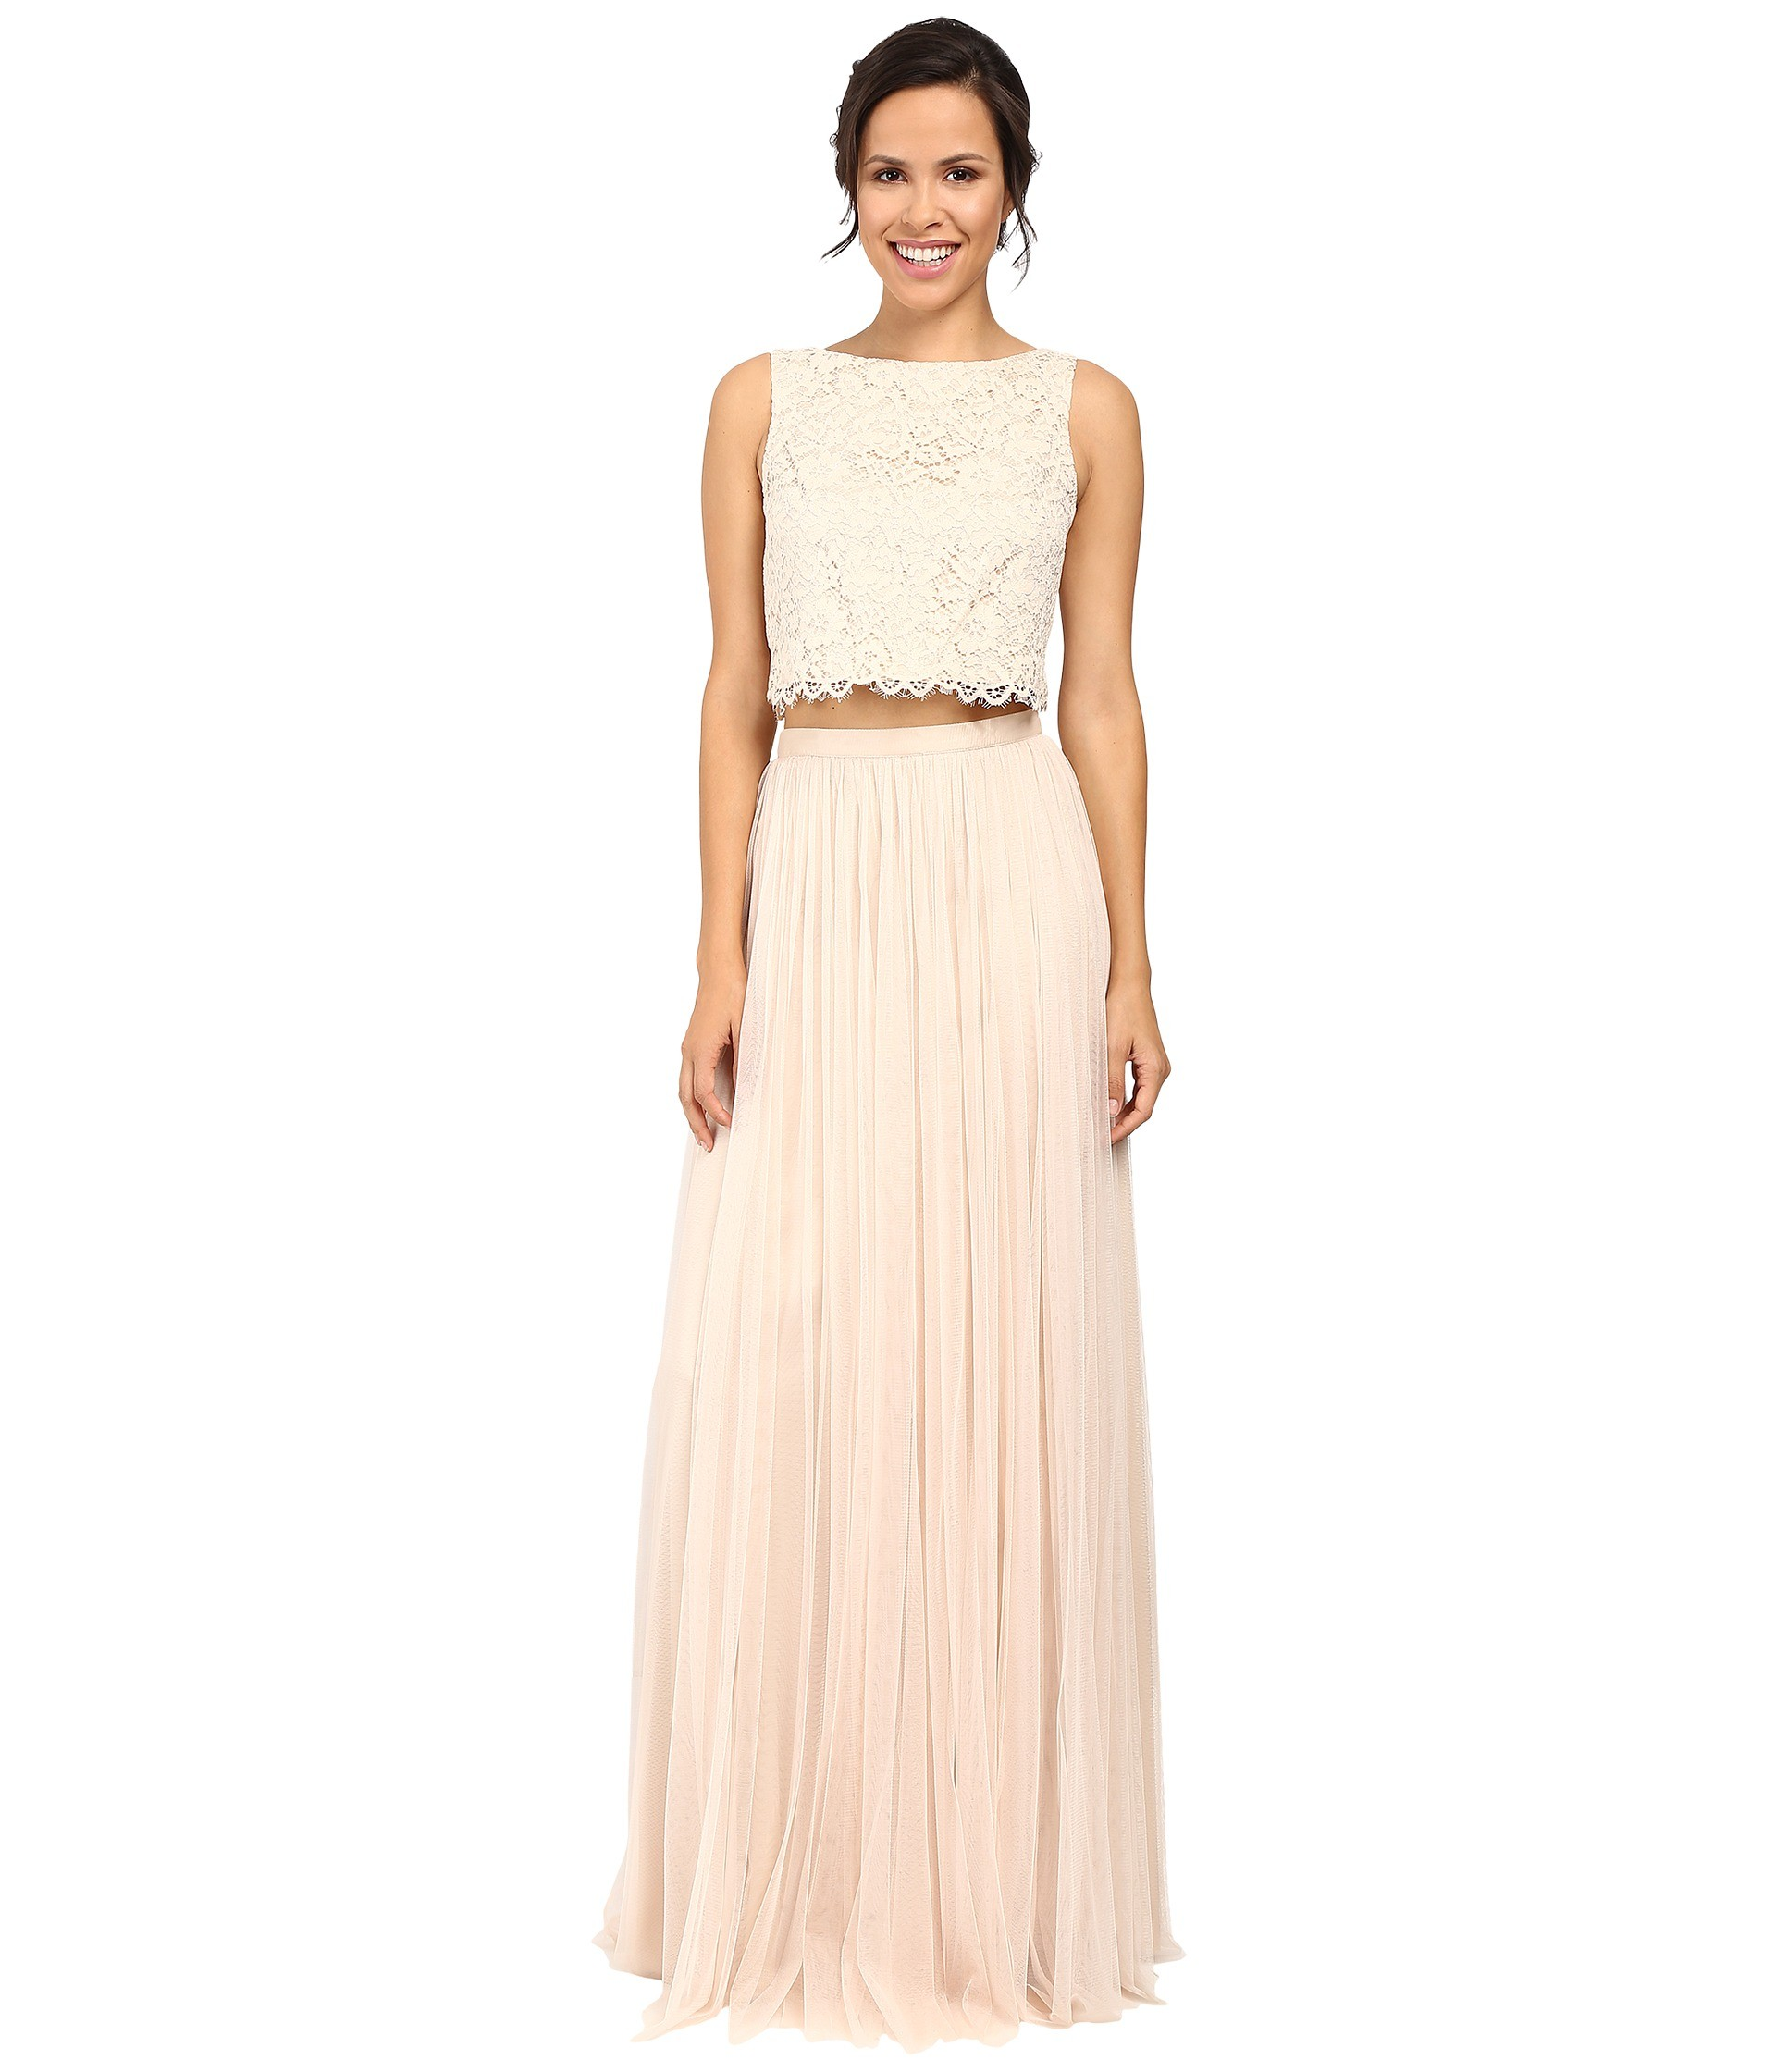 Still Looking For Gorgeous Wedding Gowns? Try These!